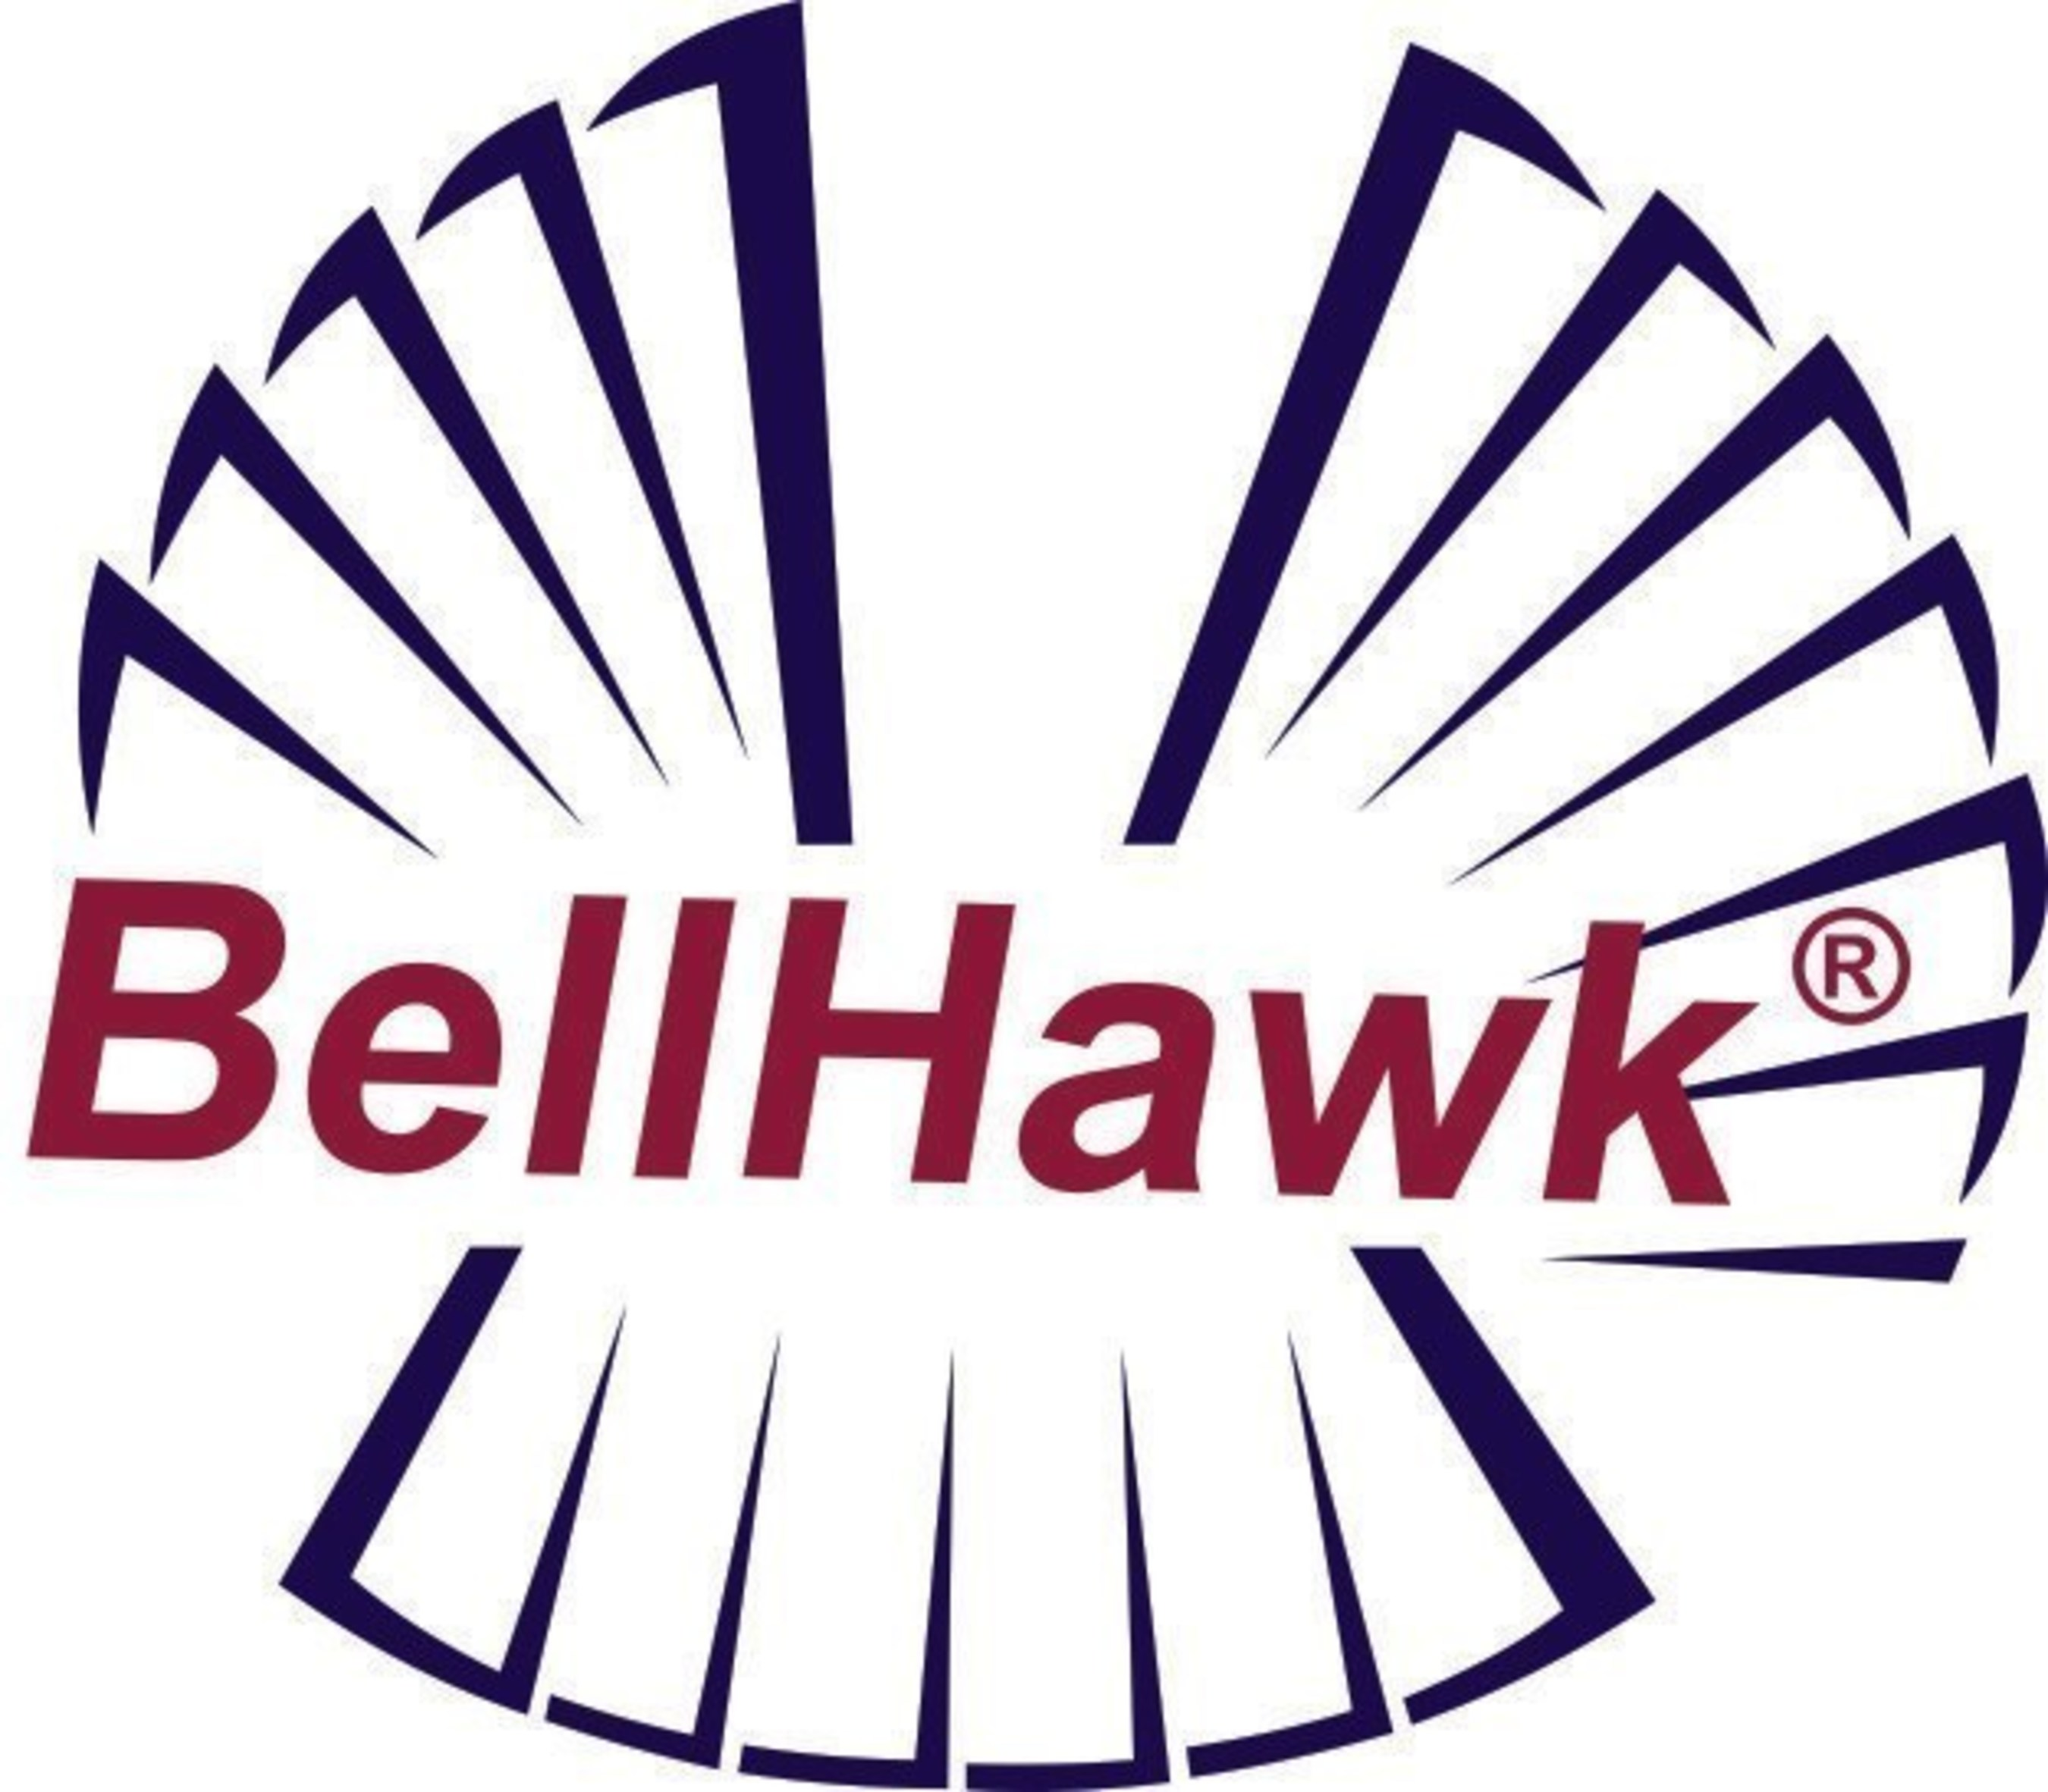 BellHawk Announces New Features for Its Low Cost Industrial Warehouse Management System